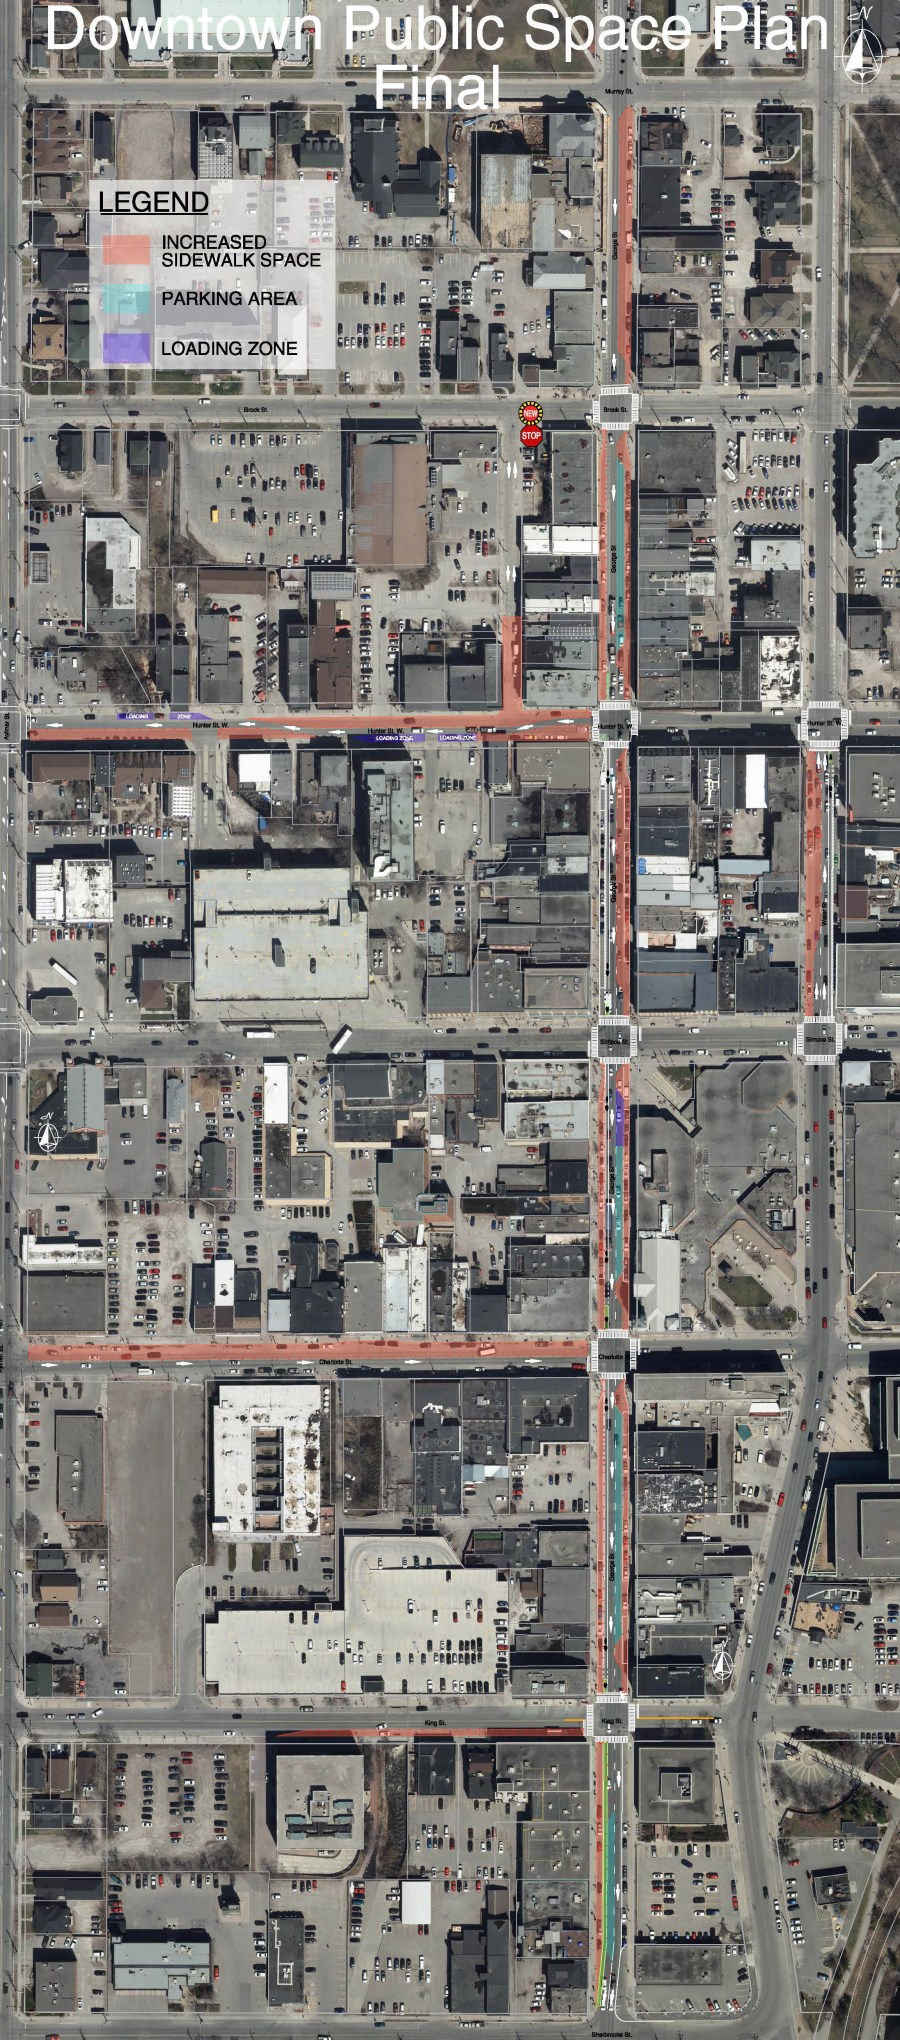 Map of downtown public space changes